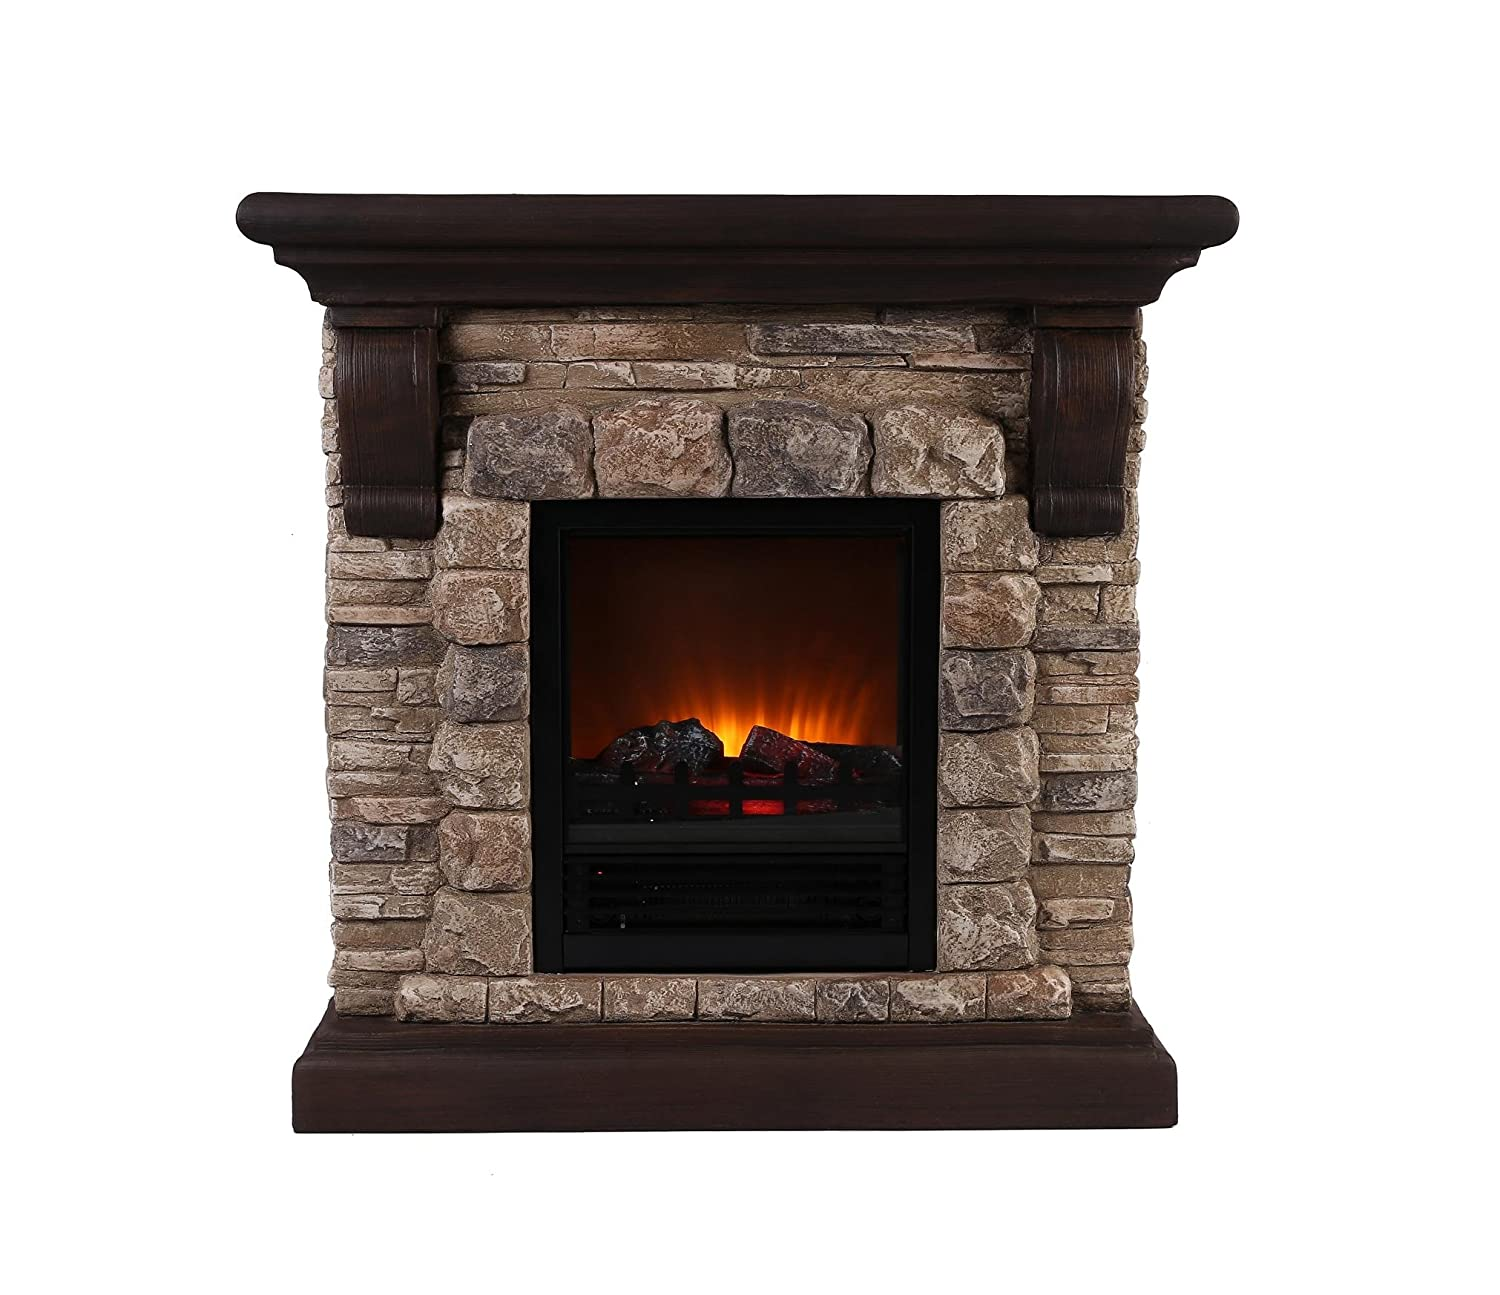 amazoncom ok lighting portable fireplace with faux stone dark  - amazoncom ok lighting portable fireplace with faux stone dark largehome  kitchen